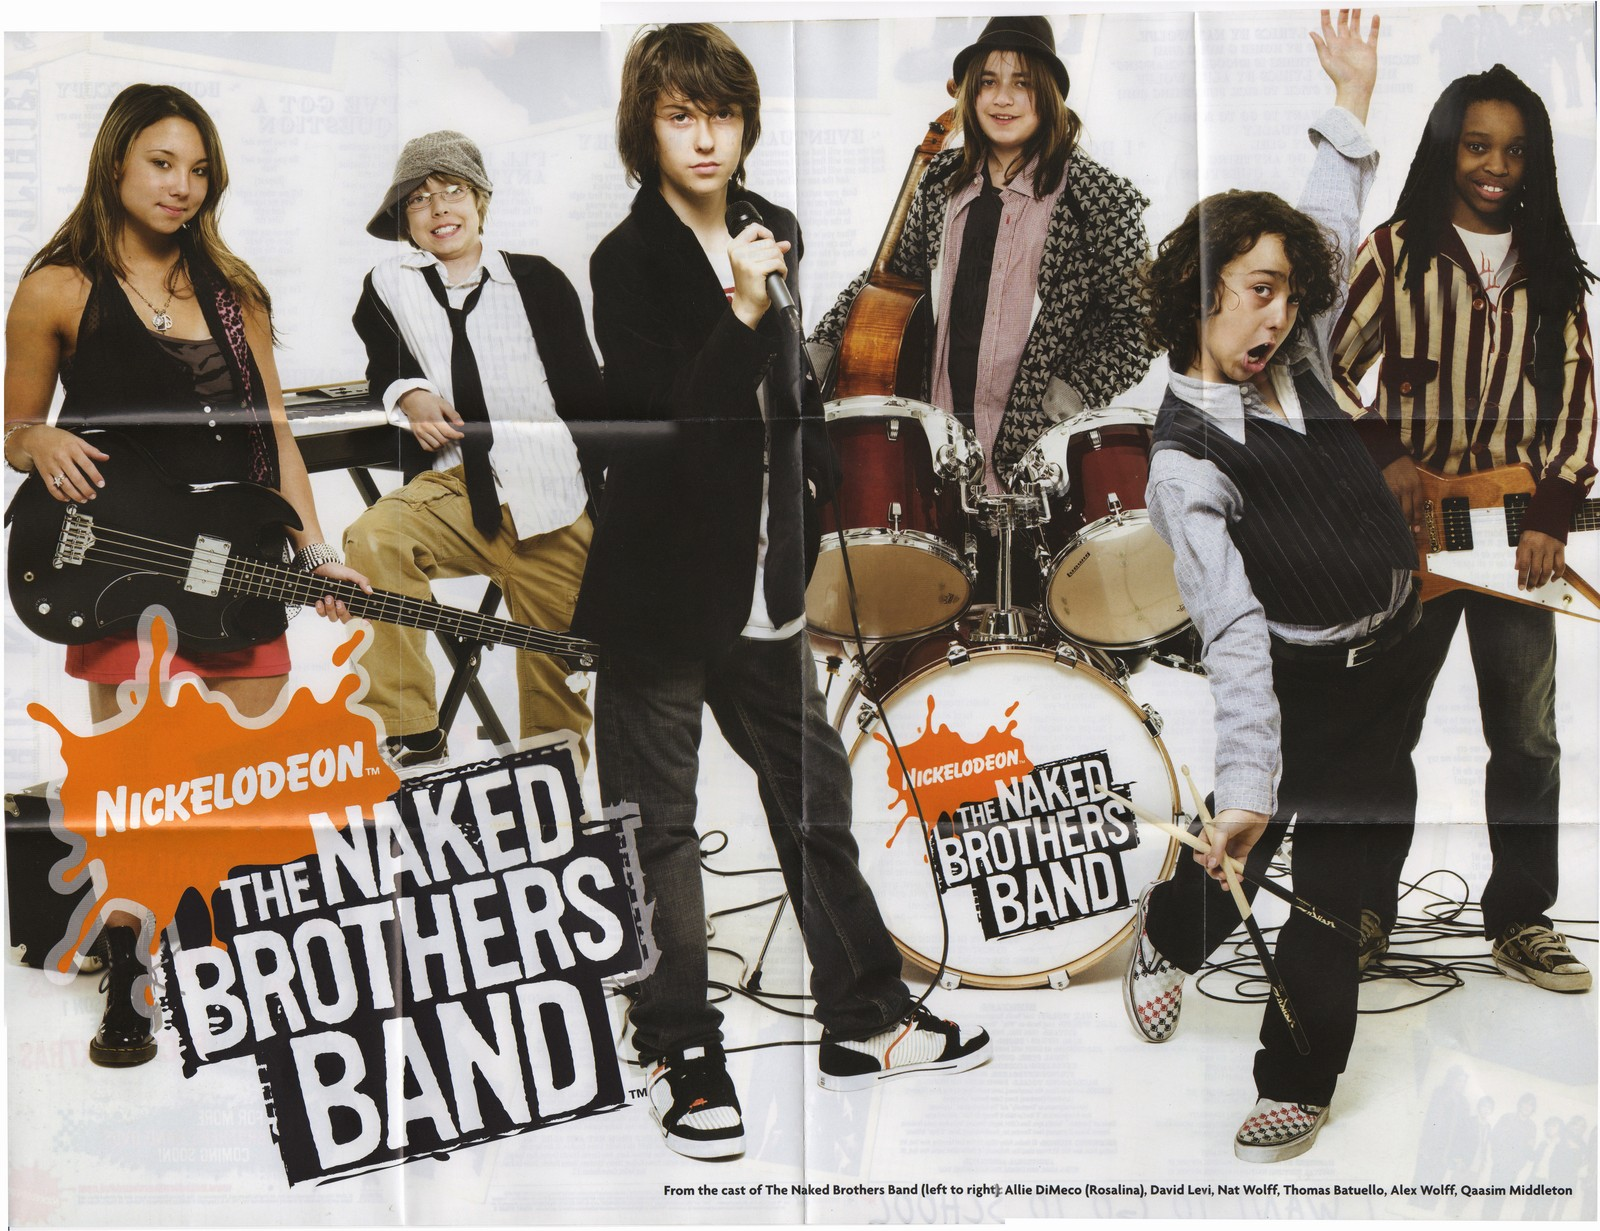 Naked brothers band photos, mermaid sucking cock